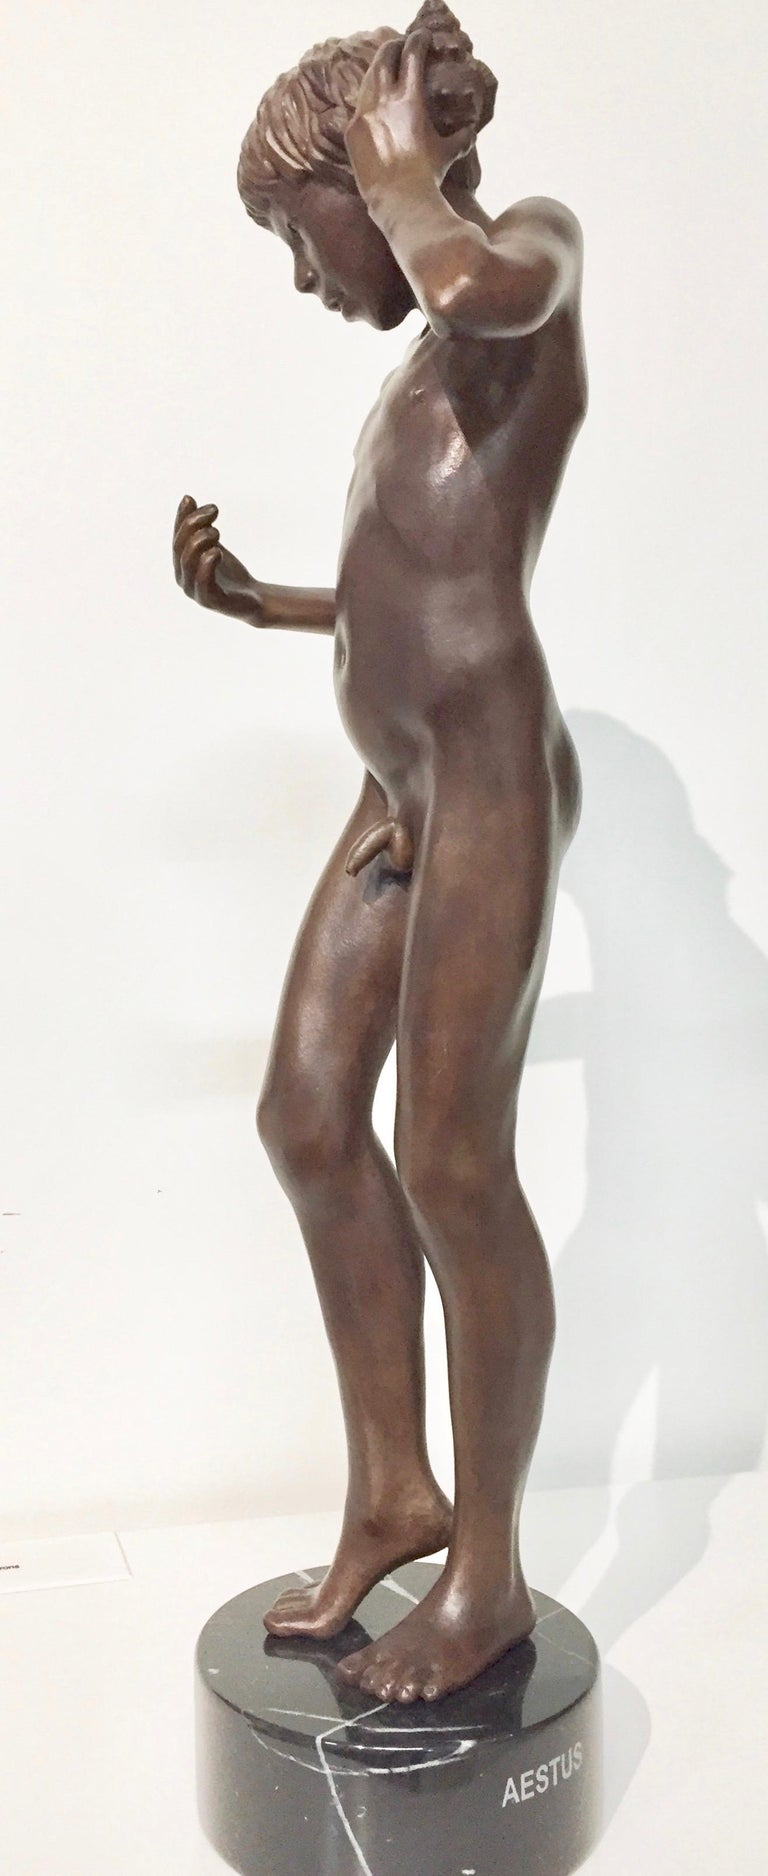 Wim van der Kant Nude Sculpture - Aestus- 21st Century Bronze Sculpture of a Young Nude Boy with a Shell